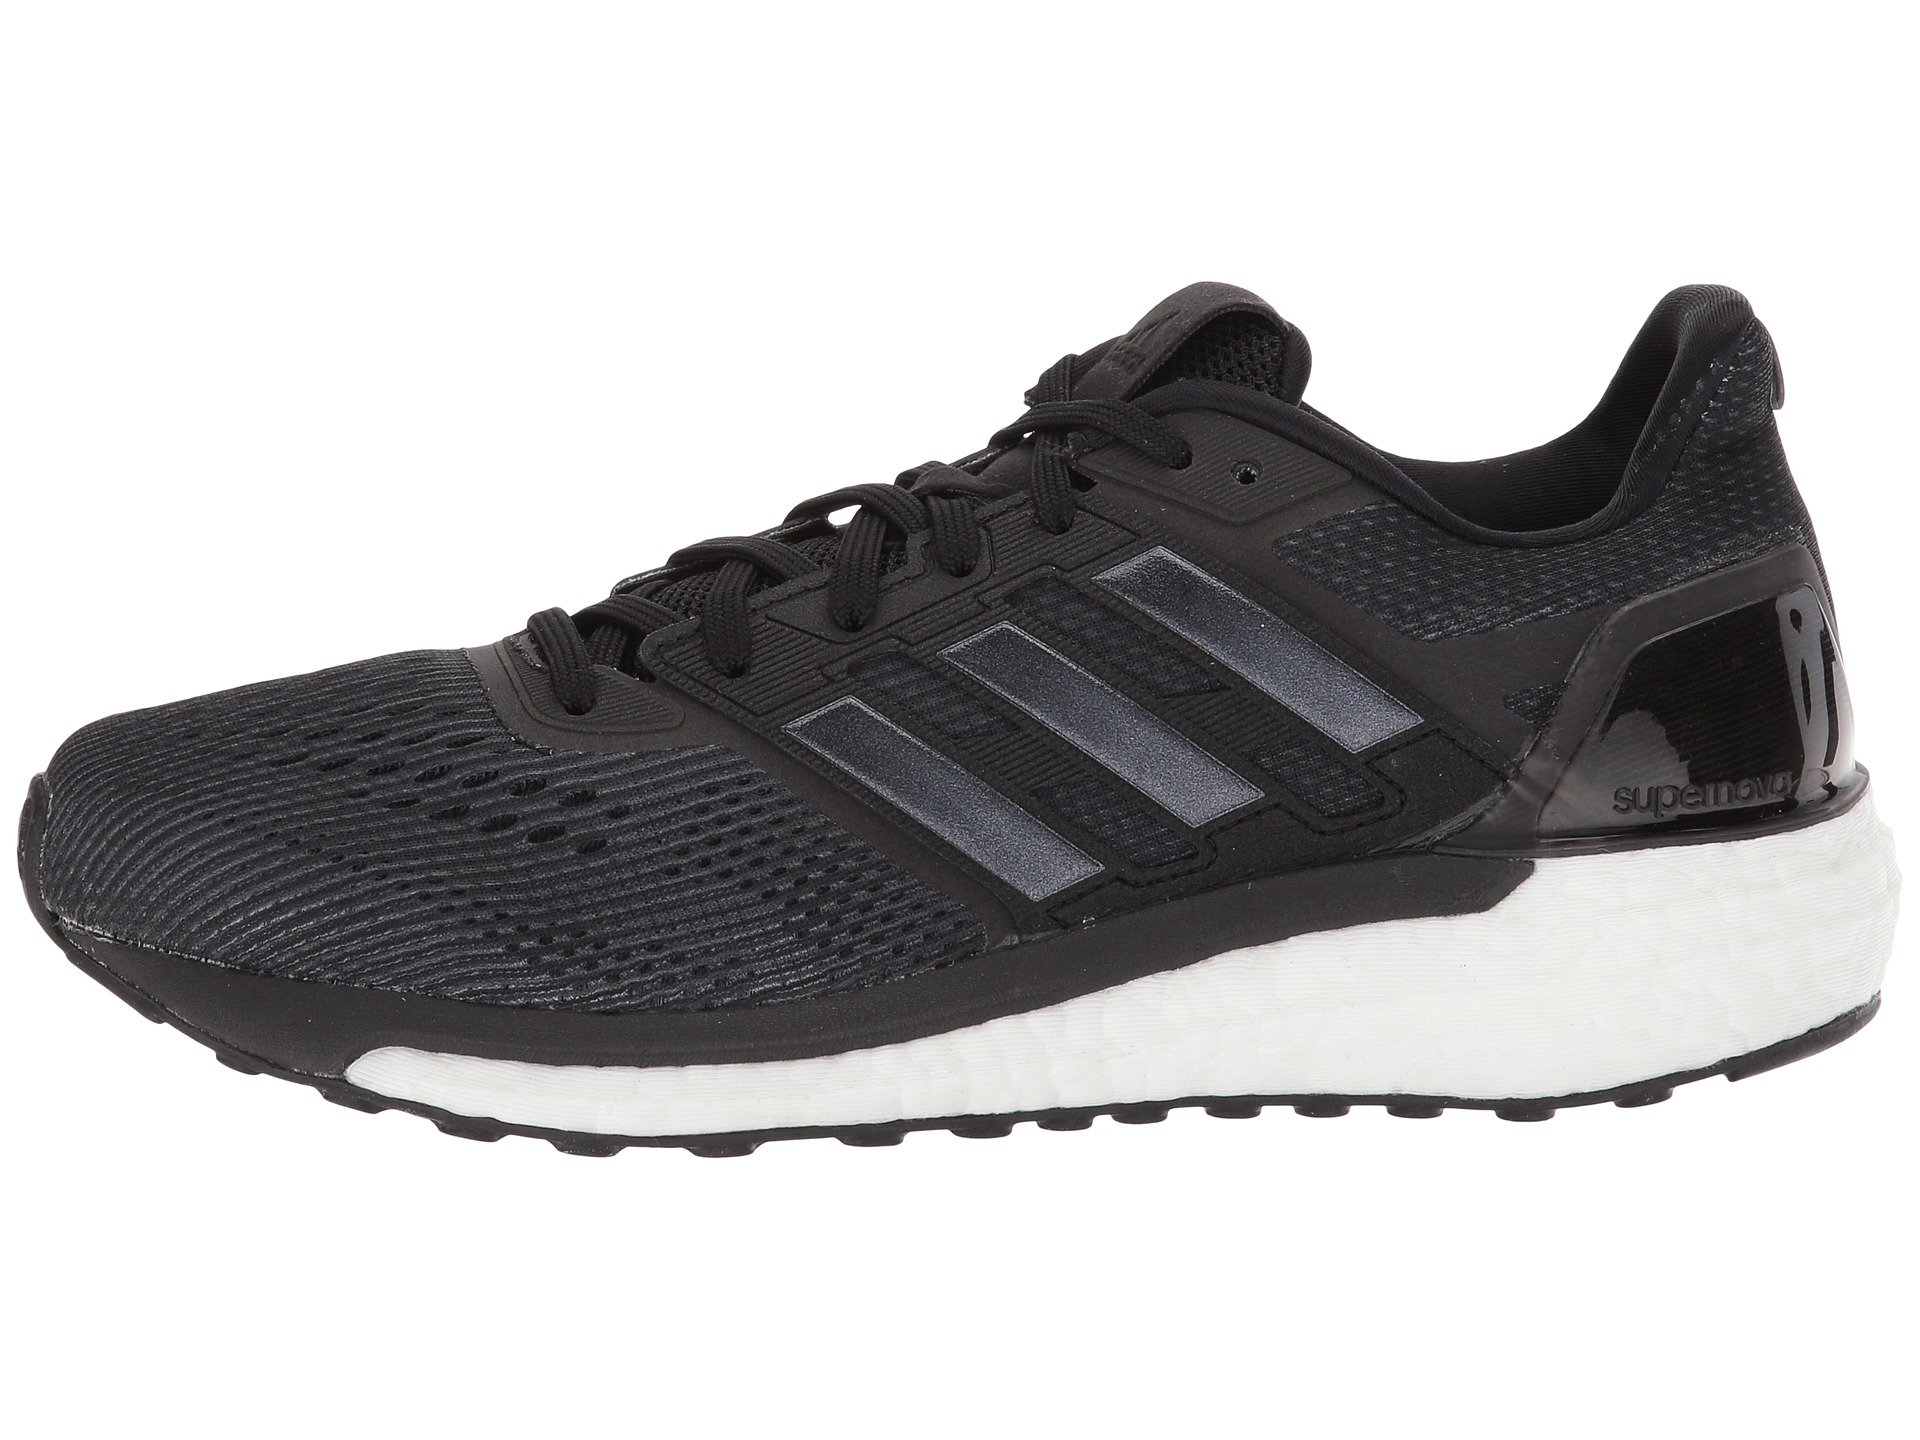 d6b8b11d240 Best Adidas Running Shoes